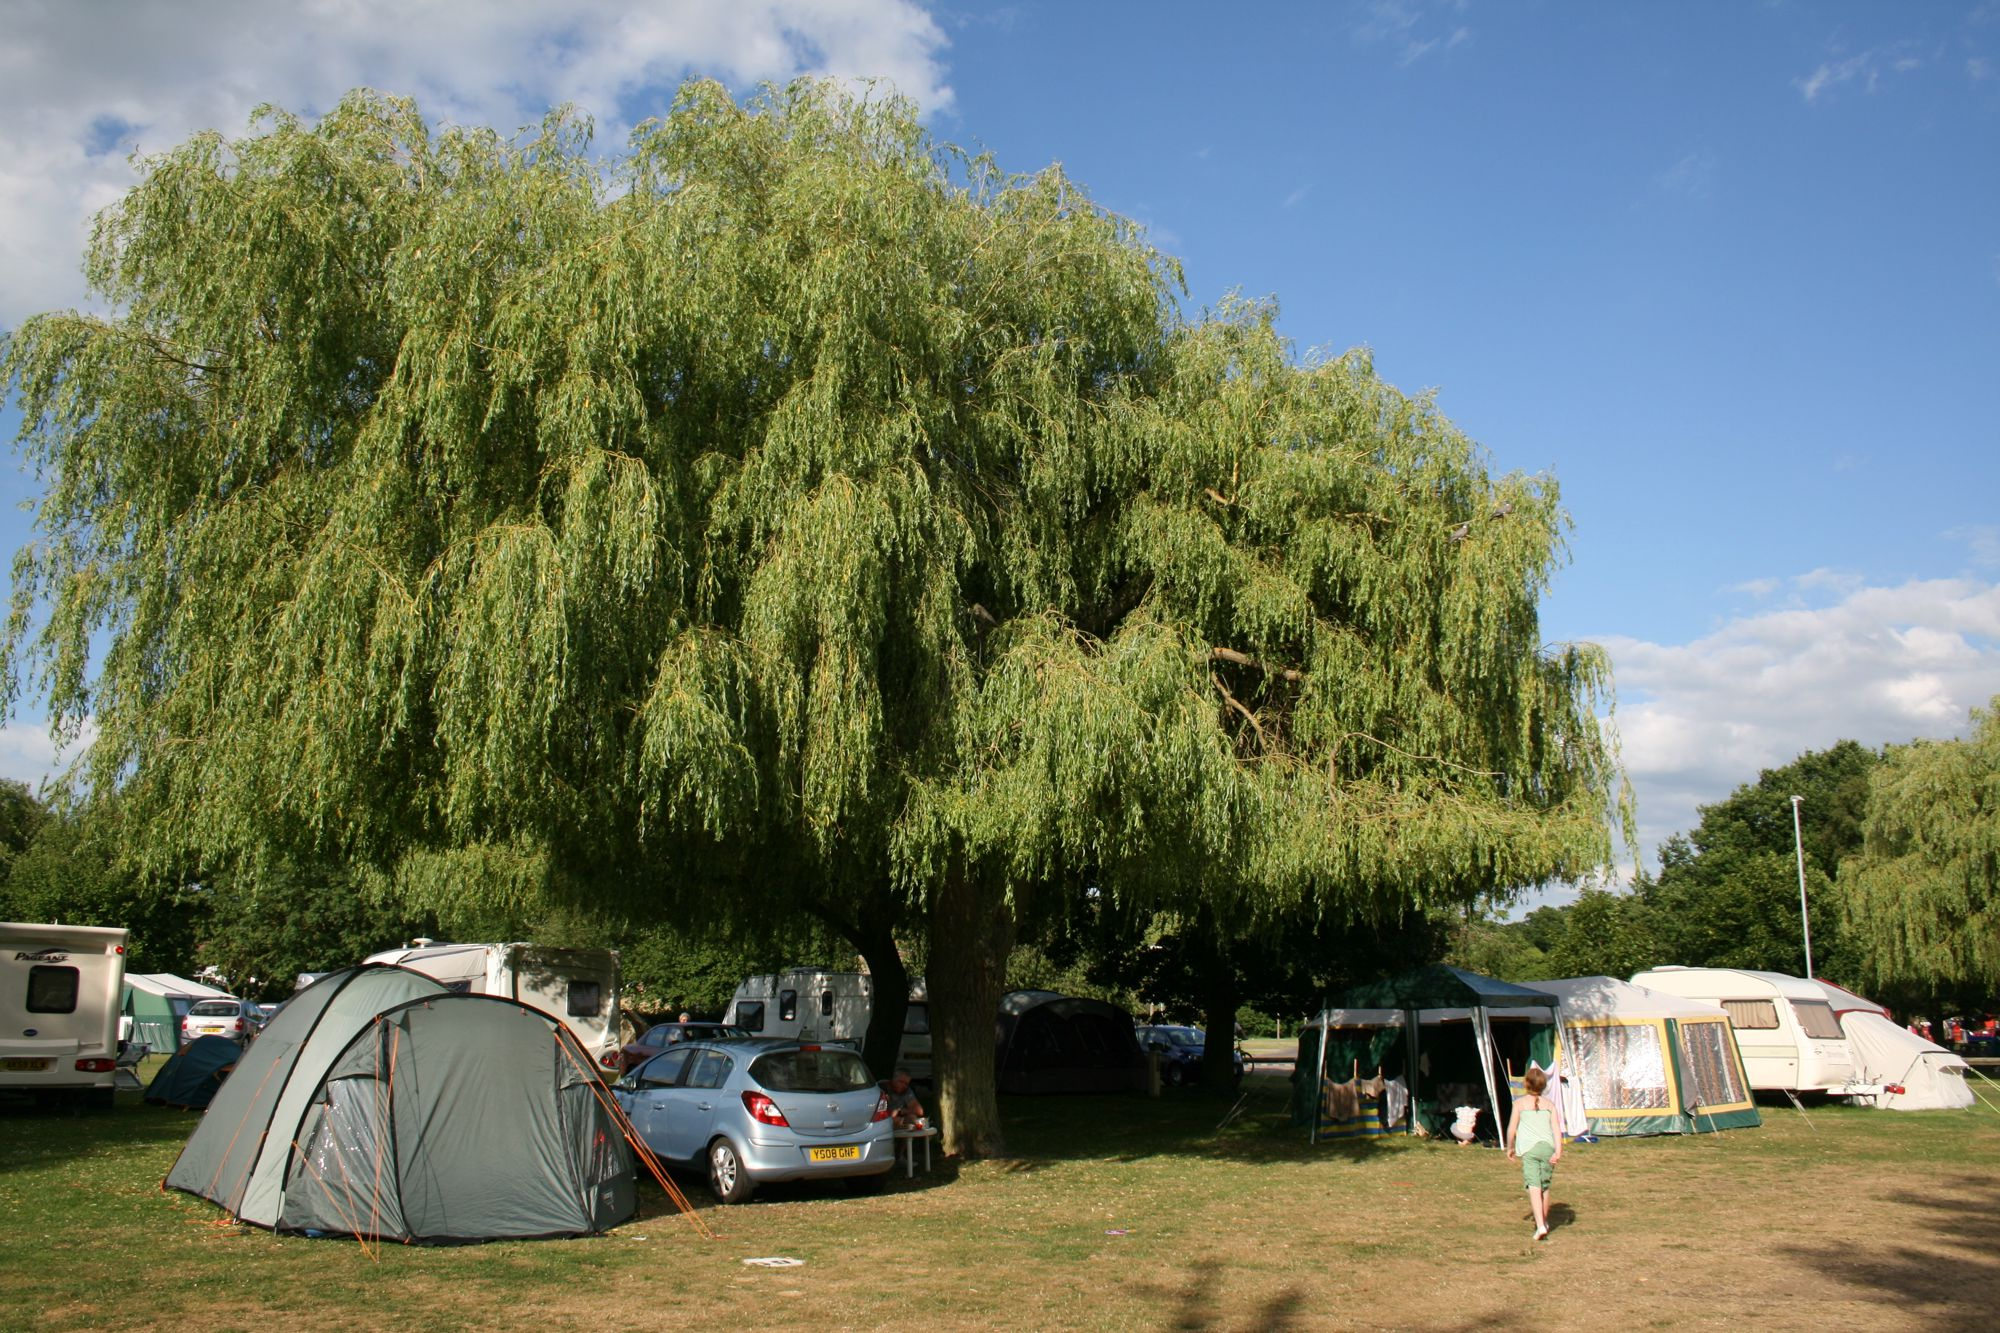 Unusually for a campsite, this one is run by a local council and actually sits within the grounds of the town's park.